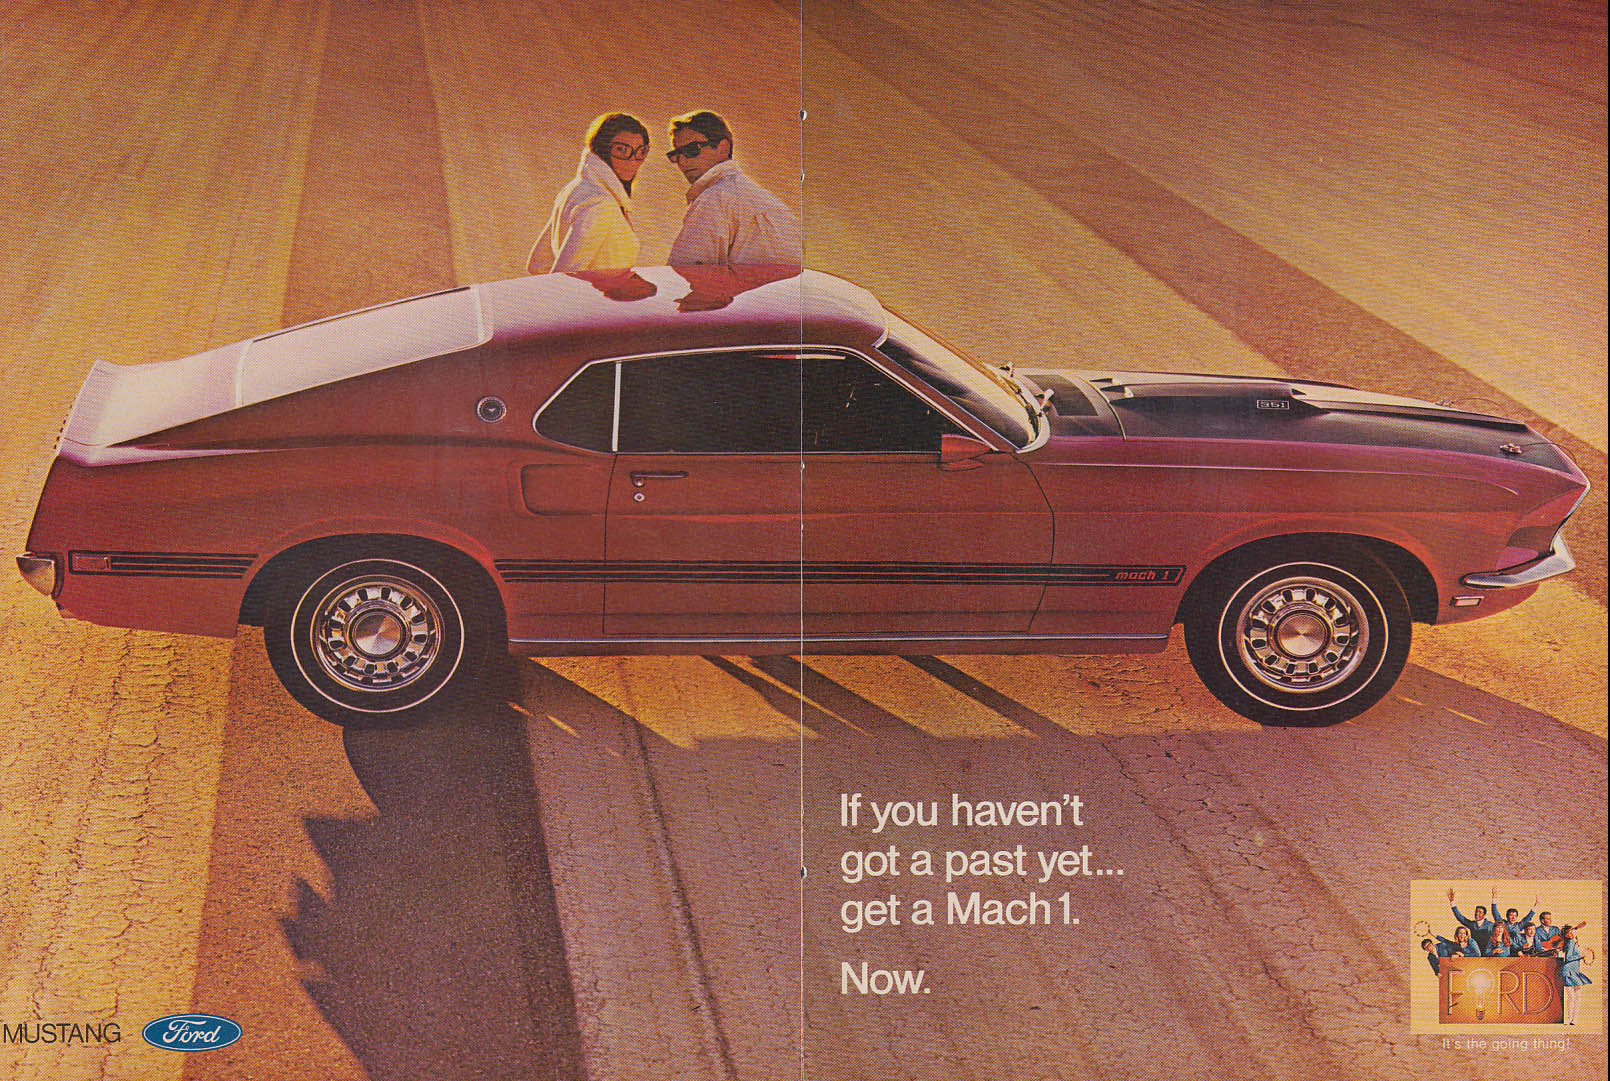 If you haven't got a past yet, get a Ford Mustang Mach I ad 1969